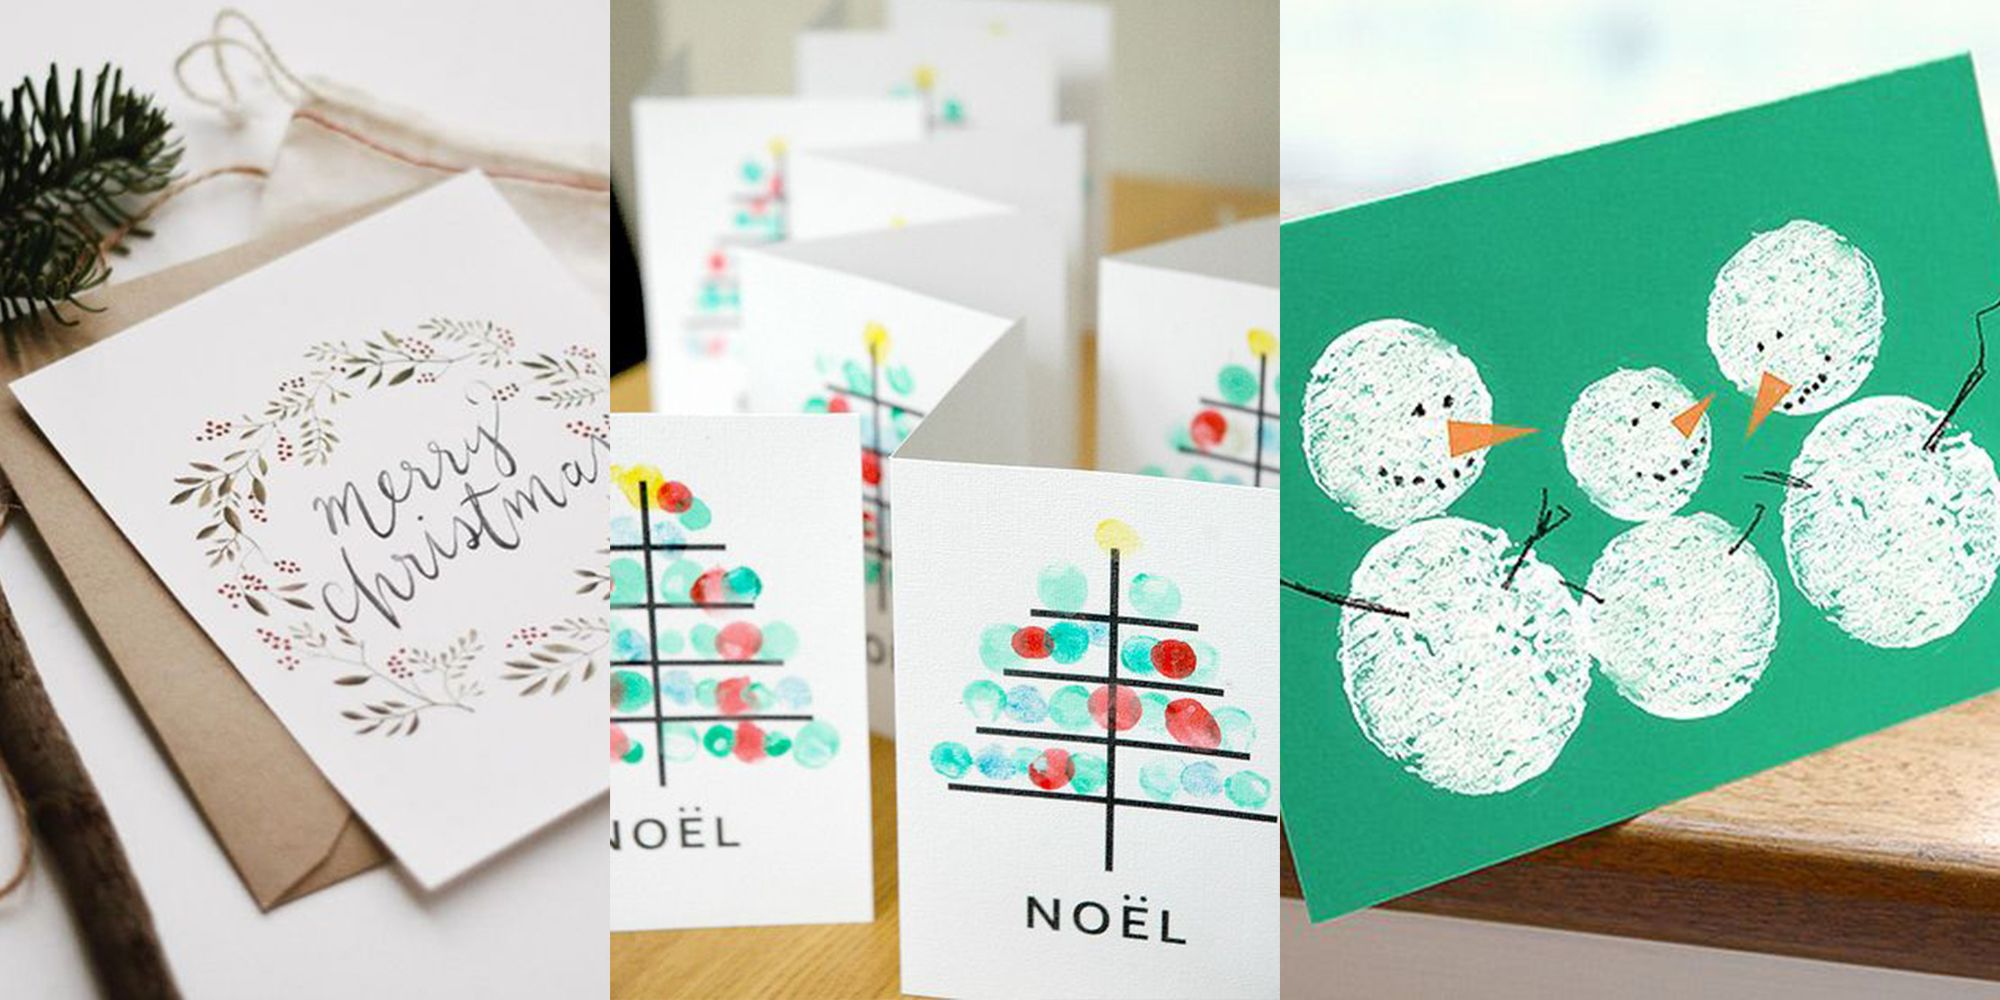 30 Christmas Cards Inspired By Pinterest \u2013 Homemade